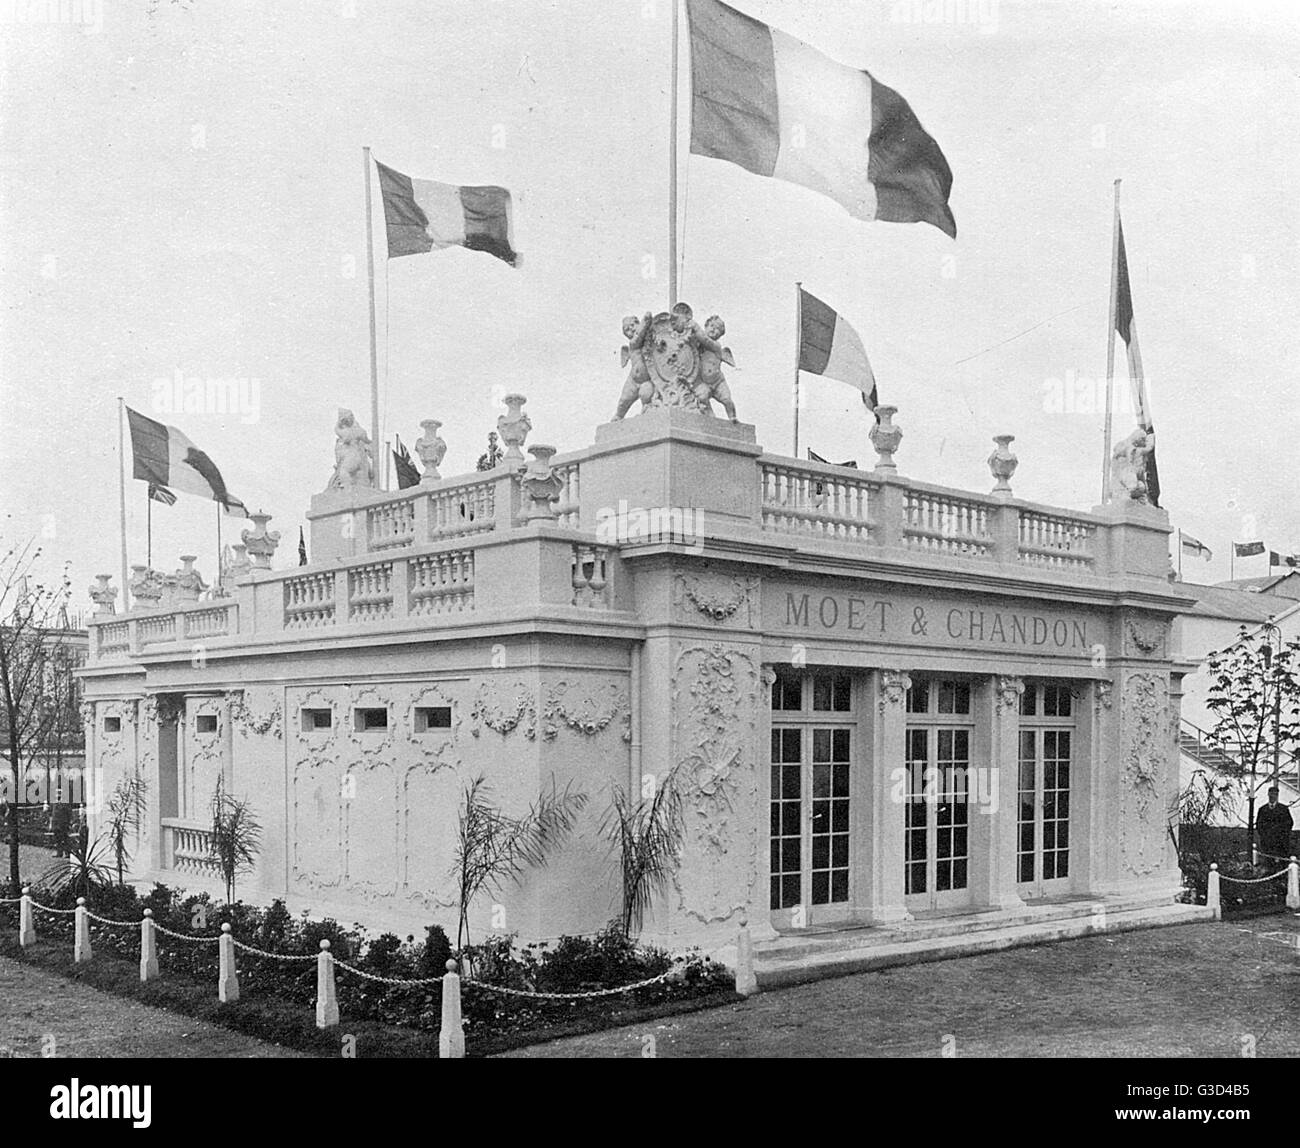 Photograph of the Moet & Chandon Pavilion in a souvenir booklet for the Franco-British Exhibition, held - Stock Image